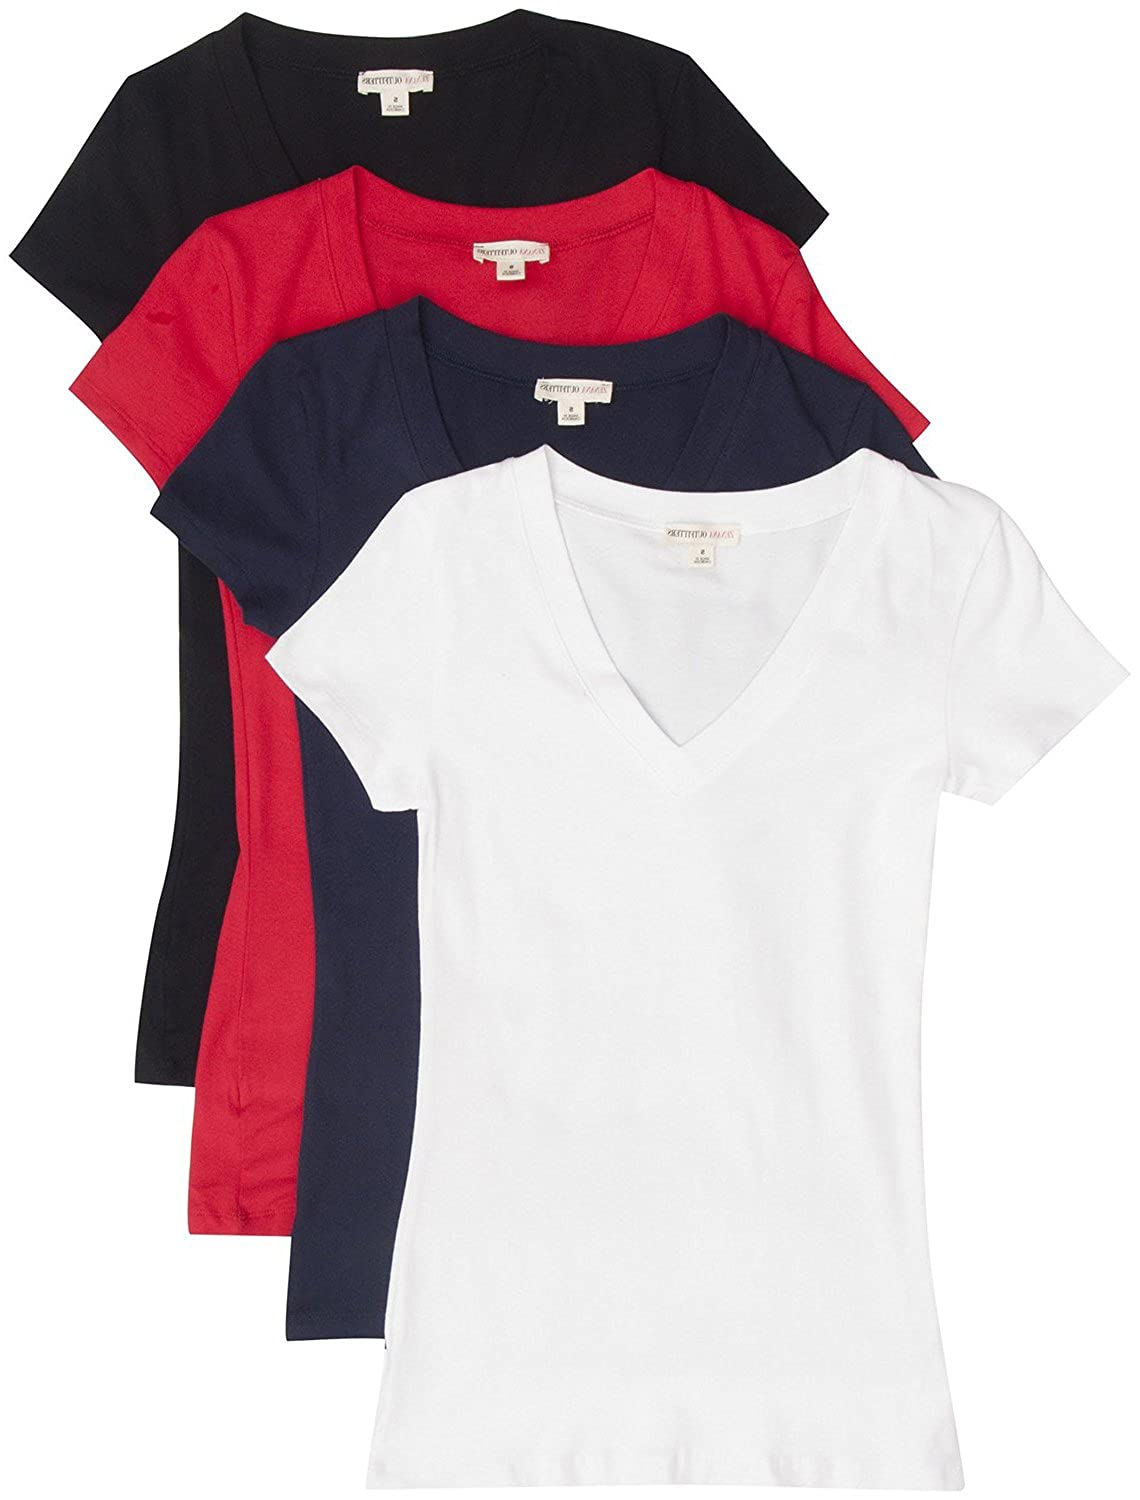 2bfc2eeecdf9 TL Women's Comfy Basic Cotton Short Sleeves Solid V-neck T-shirts, 4  Pack-bk / Wh / Nv / Red, Small at Amazon Women's Clothing store: